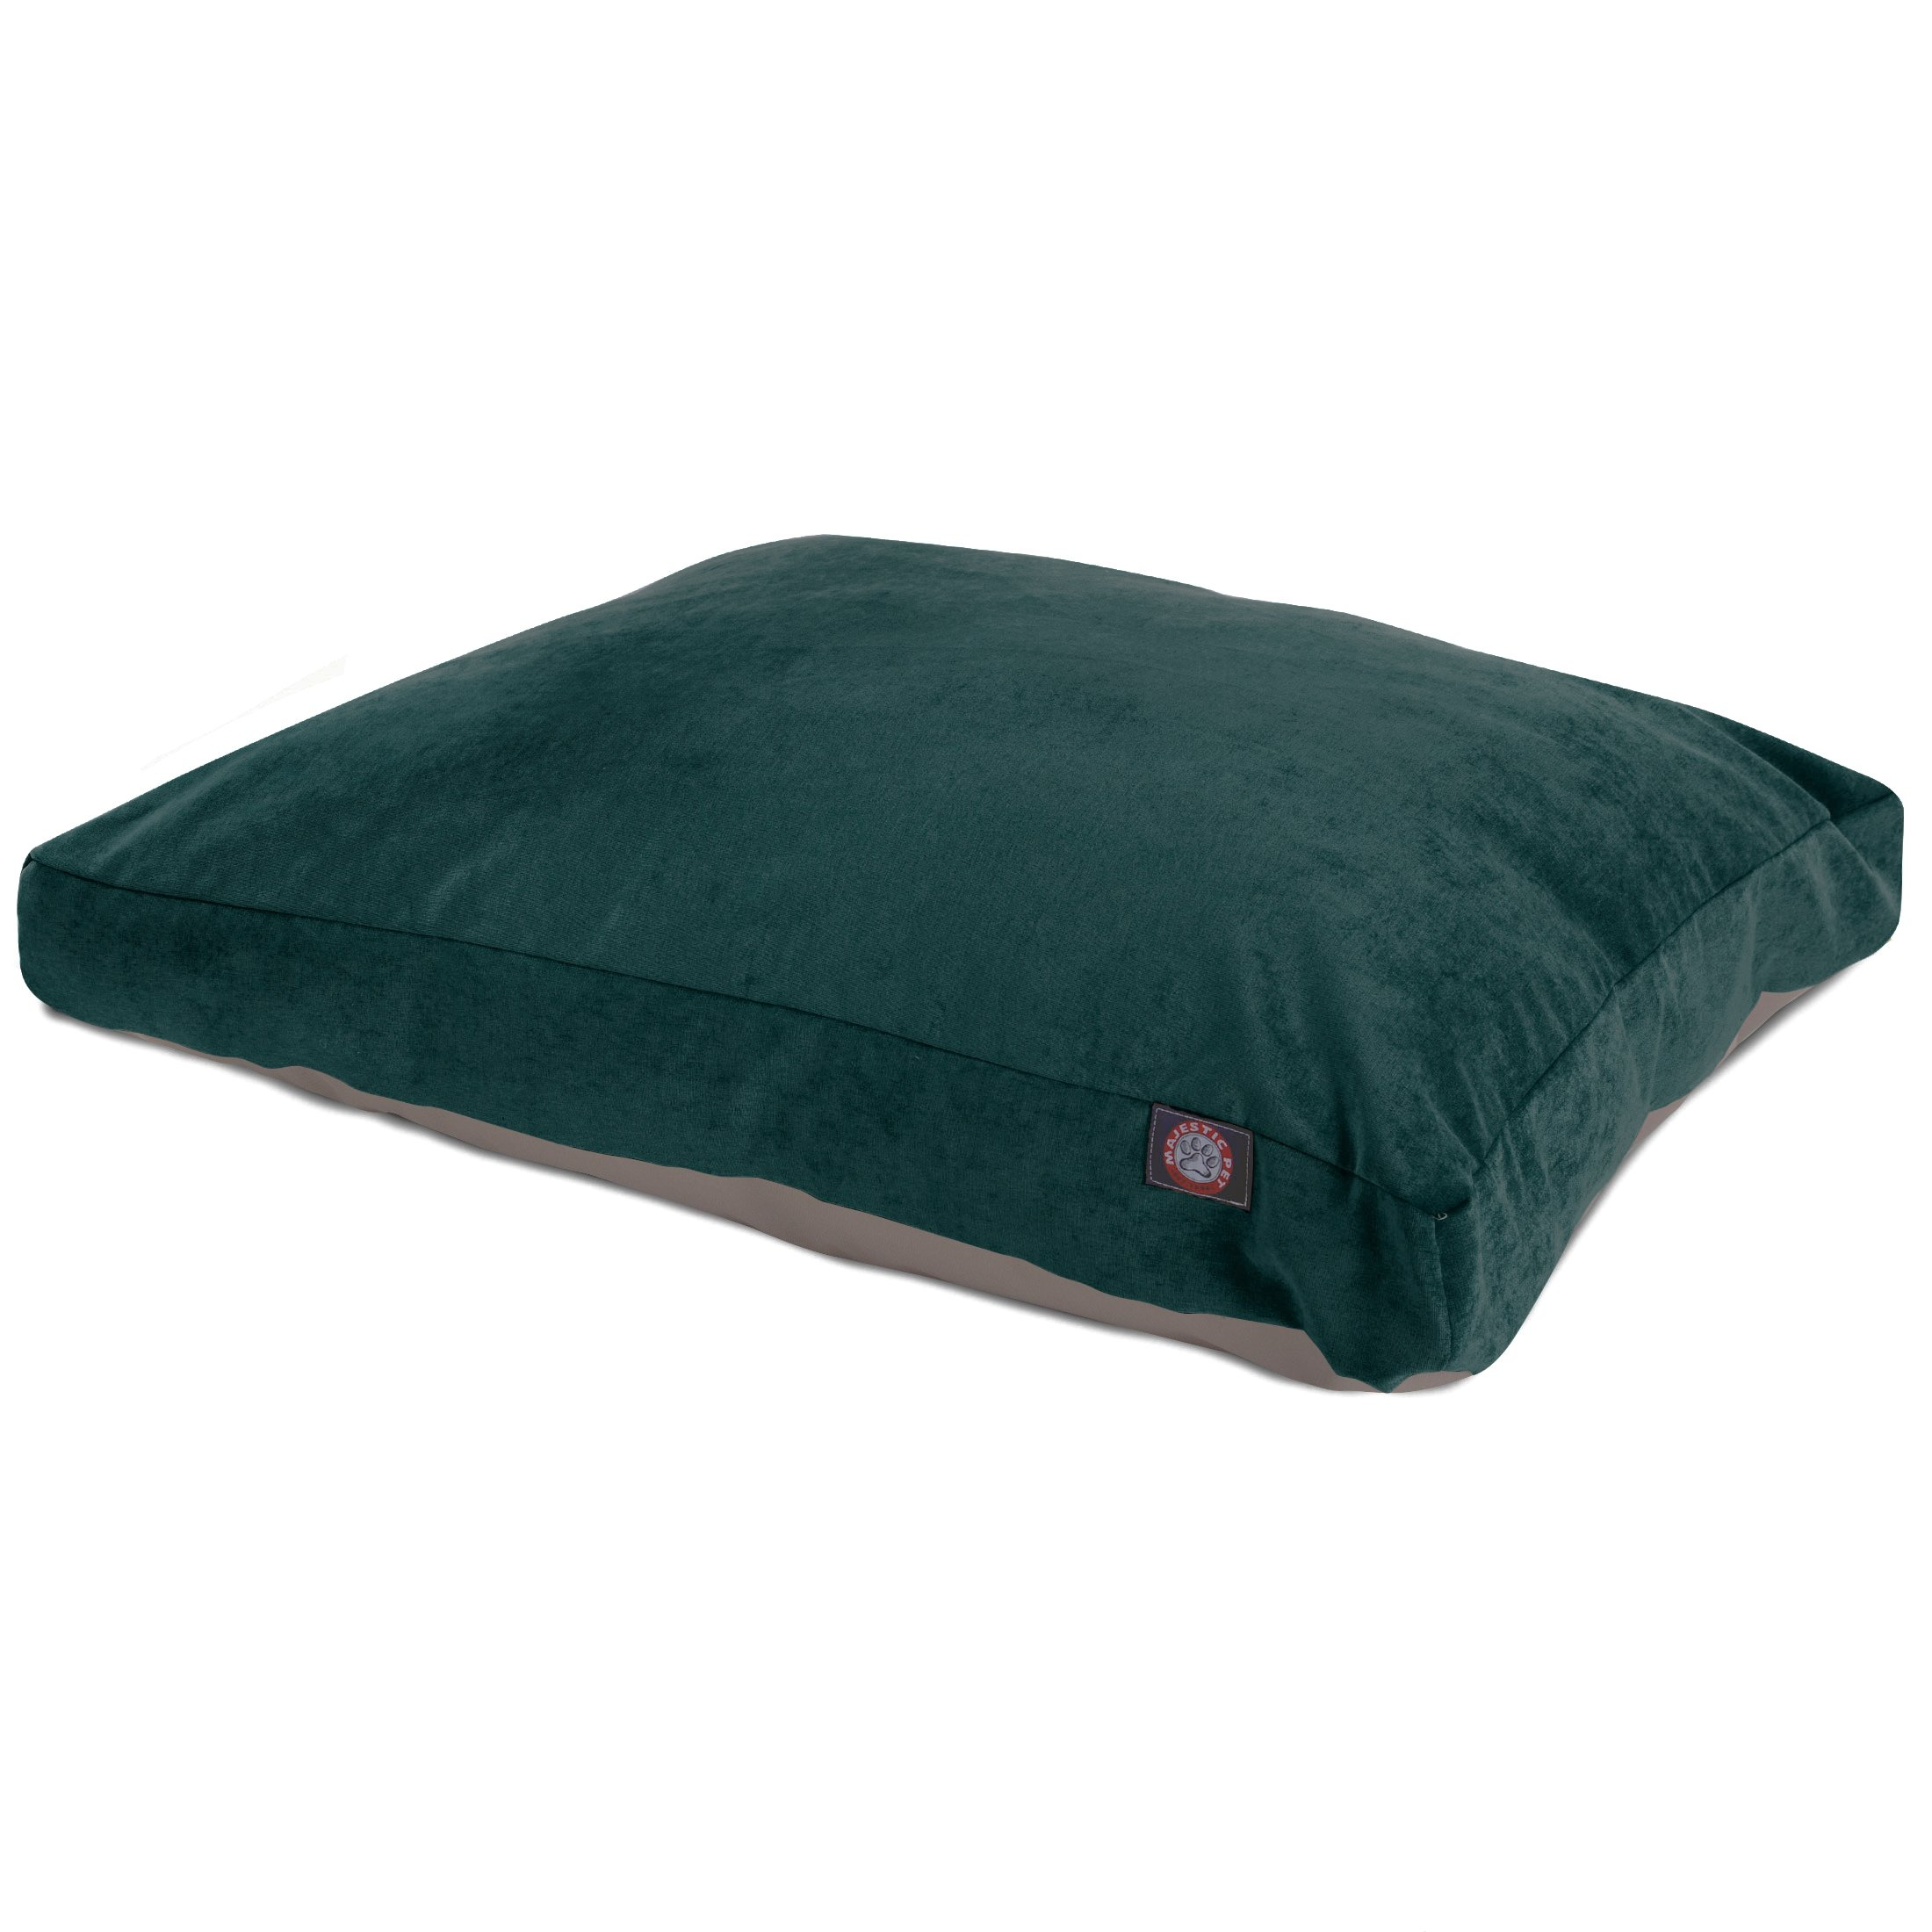 Marine Villa Collection Large Rectangle Pet Dog Bed